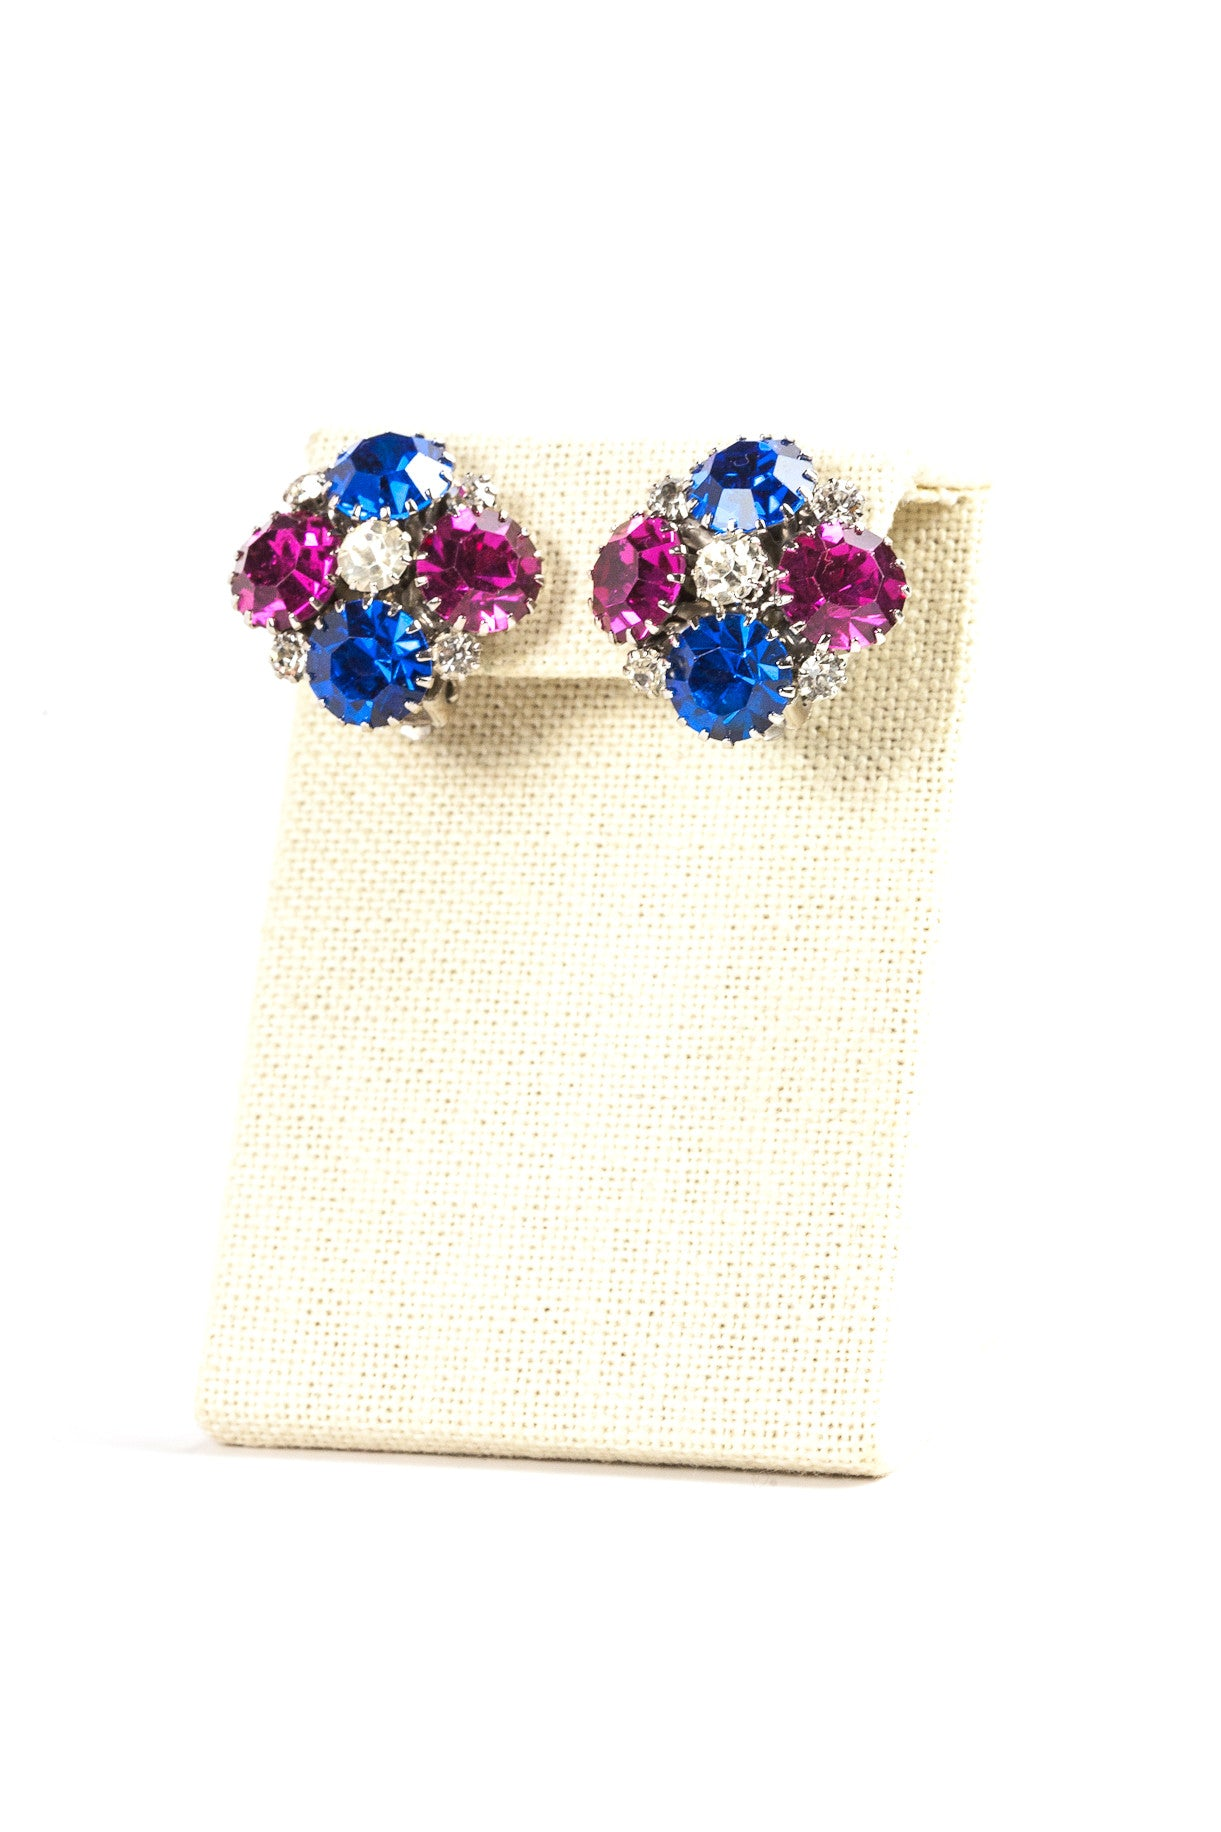 60's__Weiss__Blue and Pink Rhinestone Clips